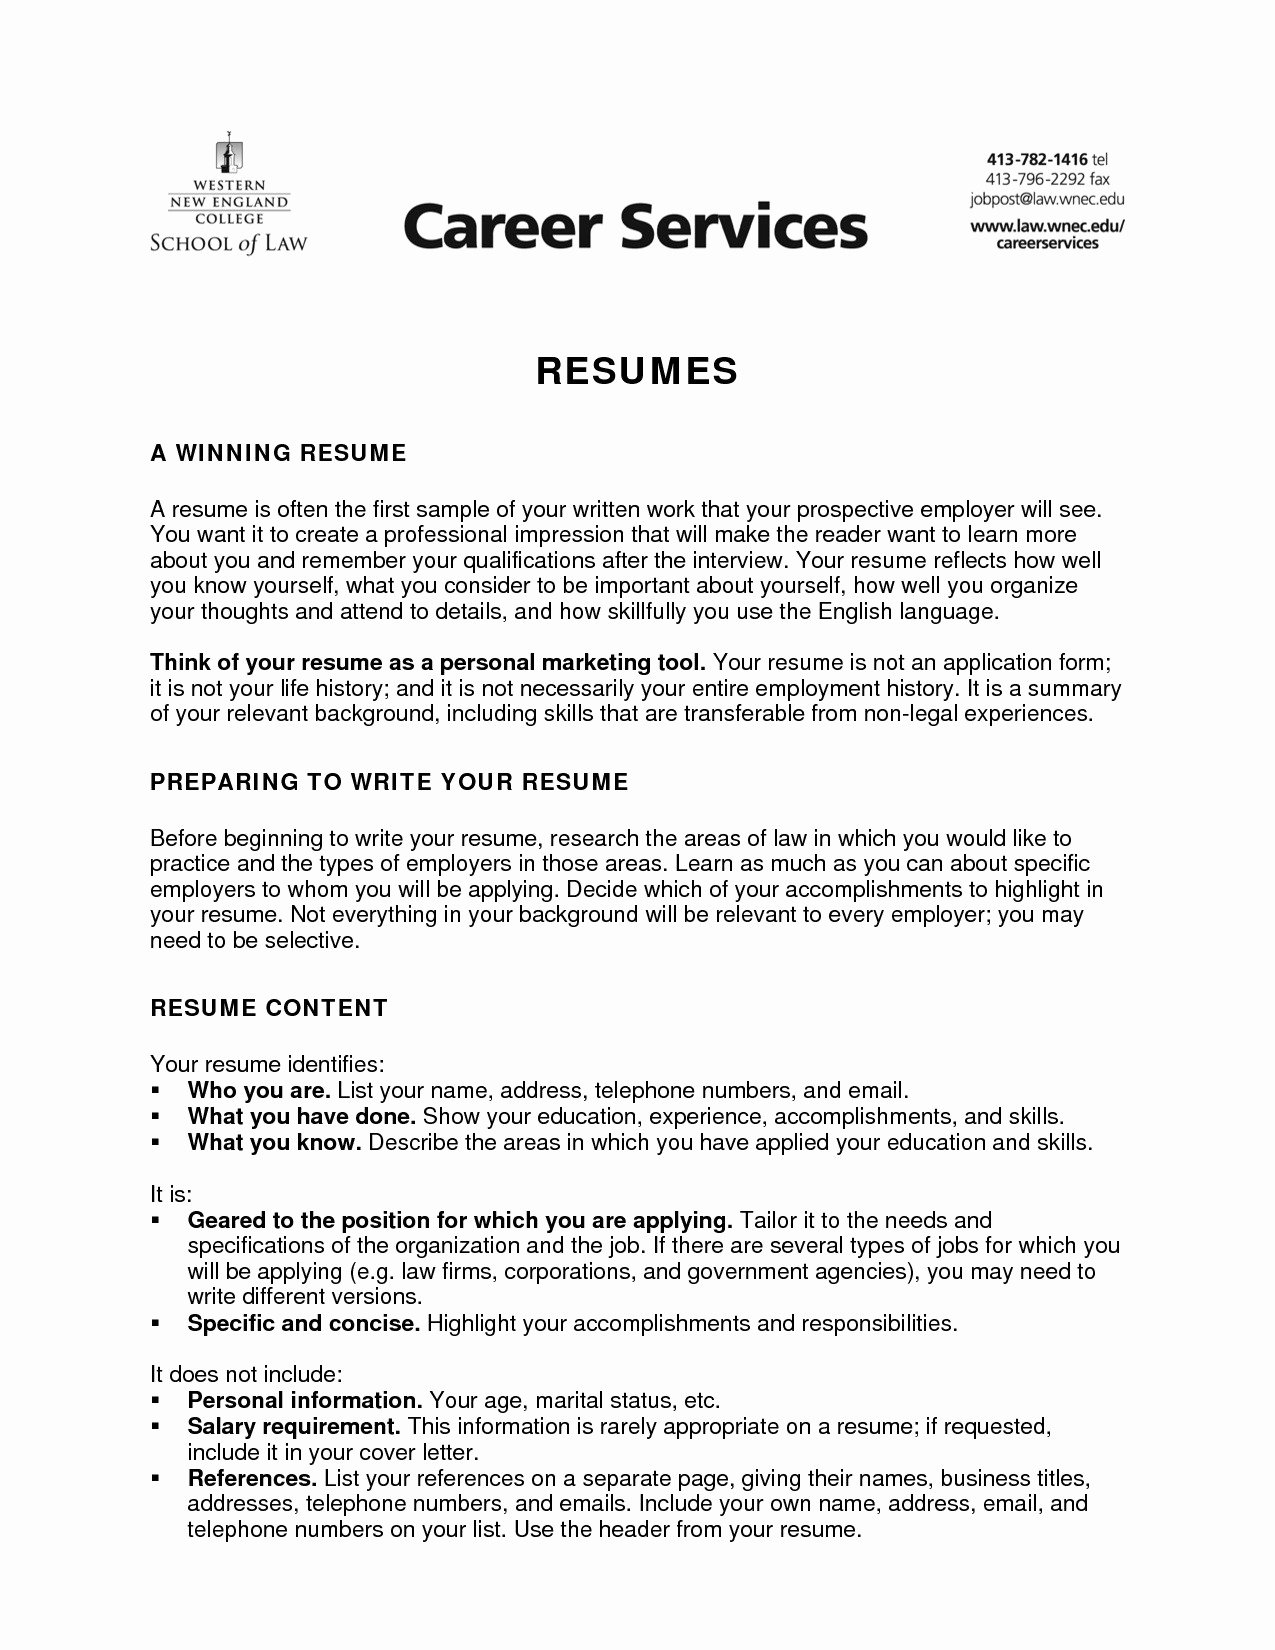 Resume Personal Statement - College Student Sample Resume Beautiful Example Personal Statement